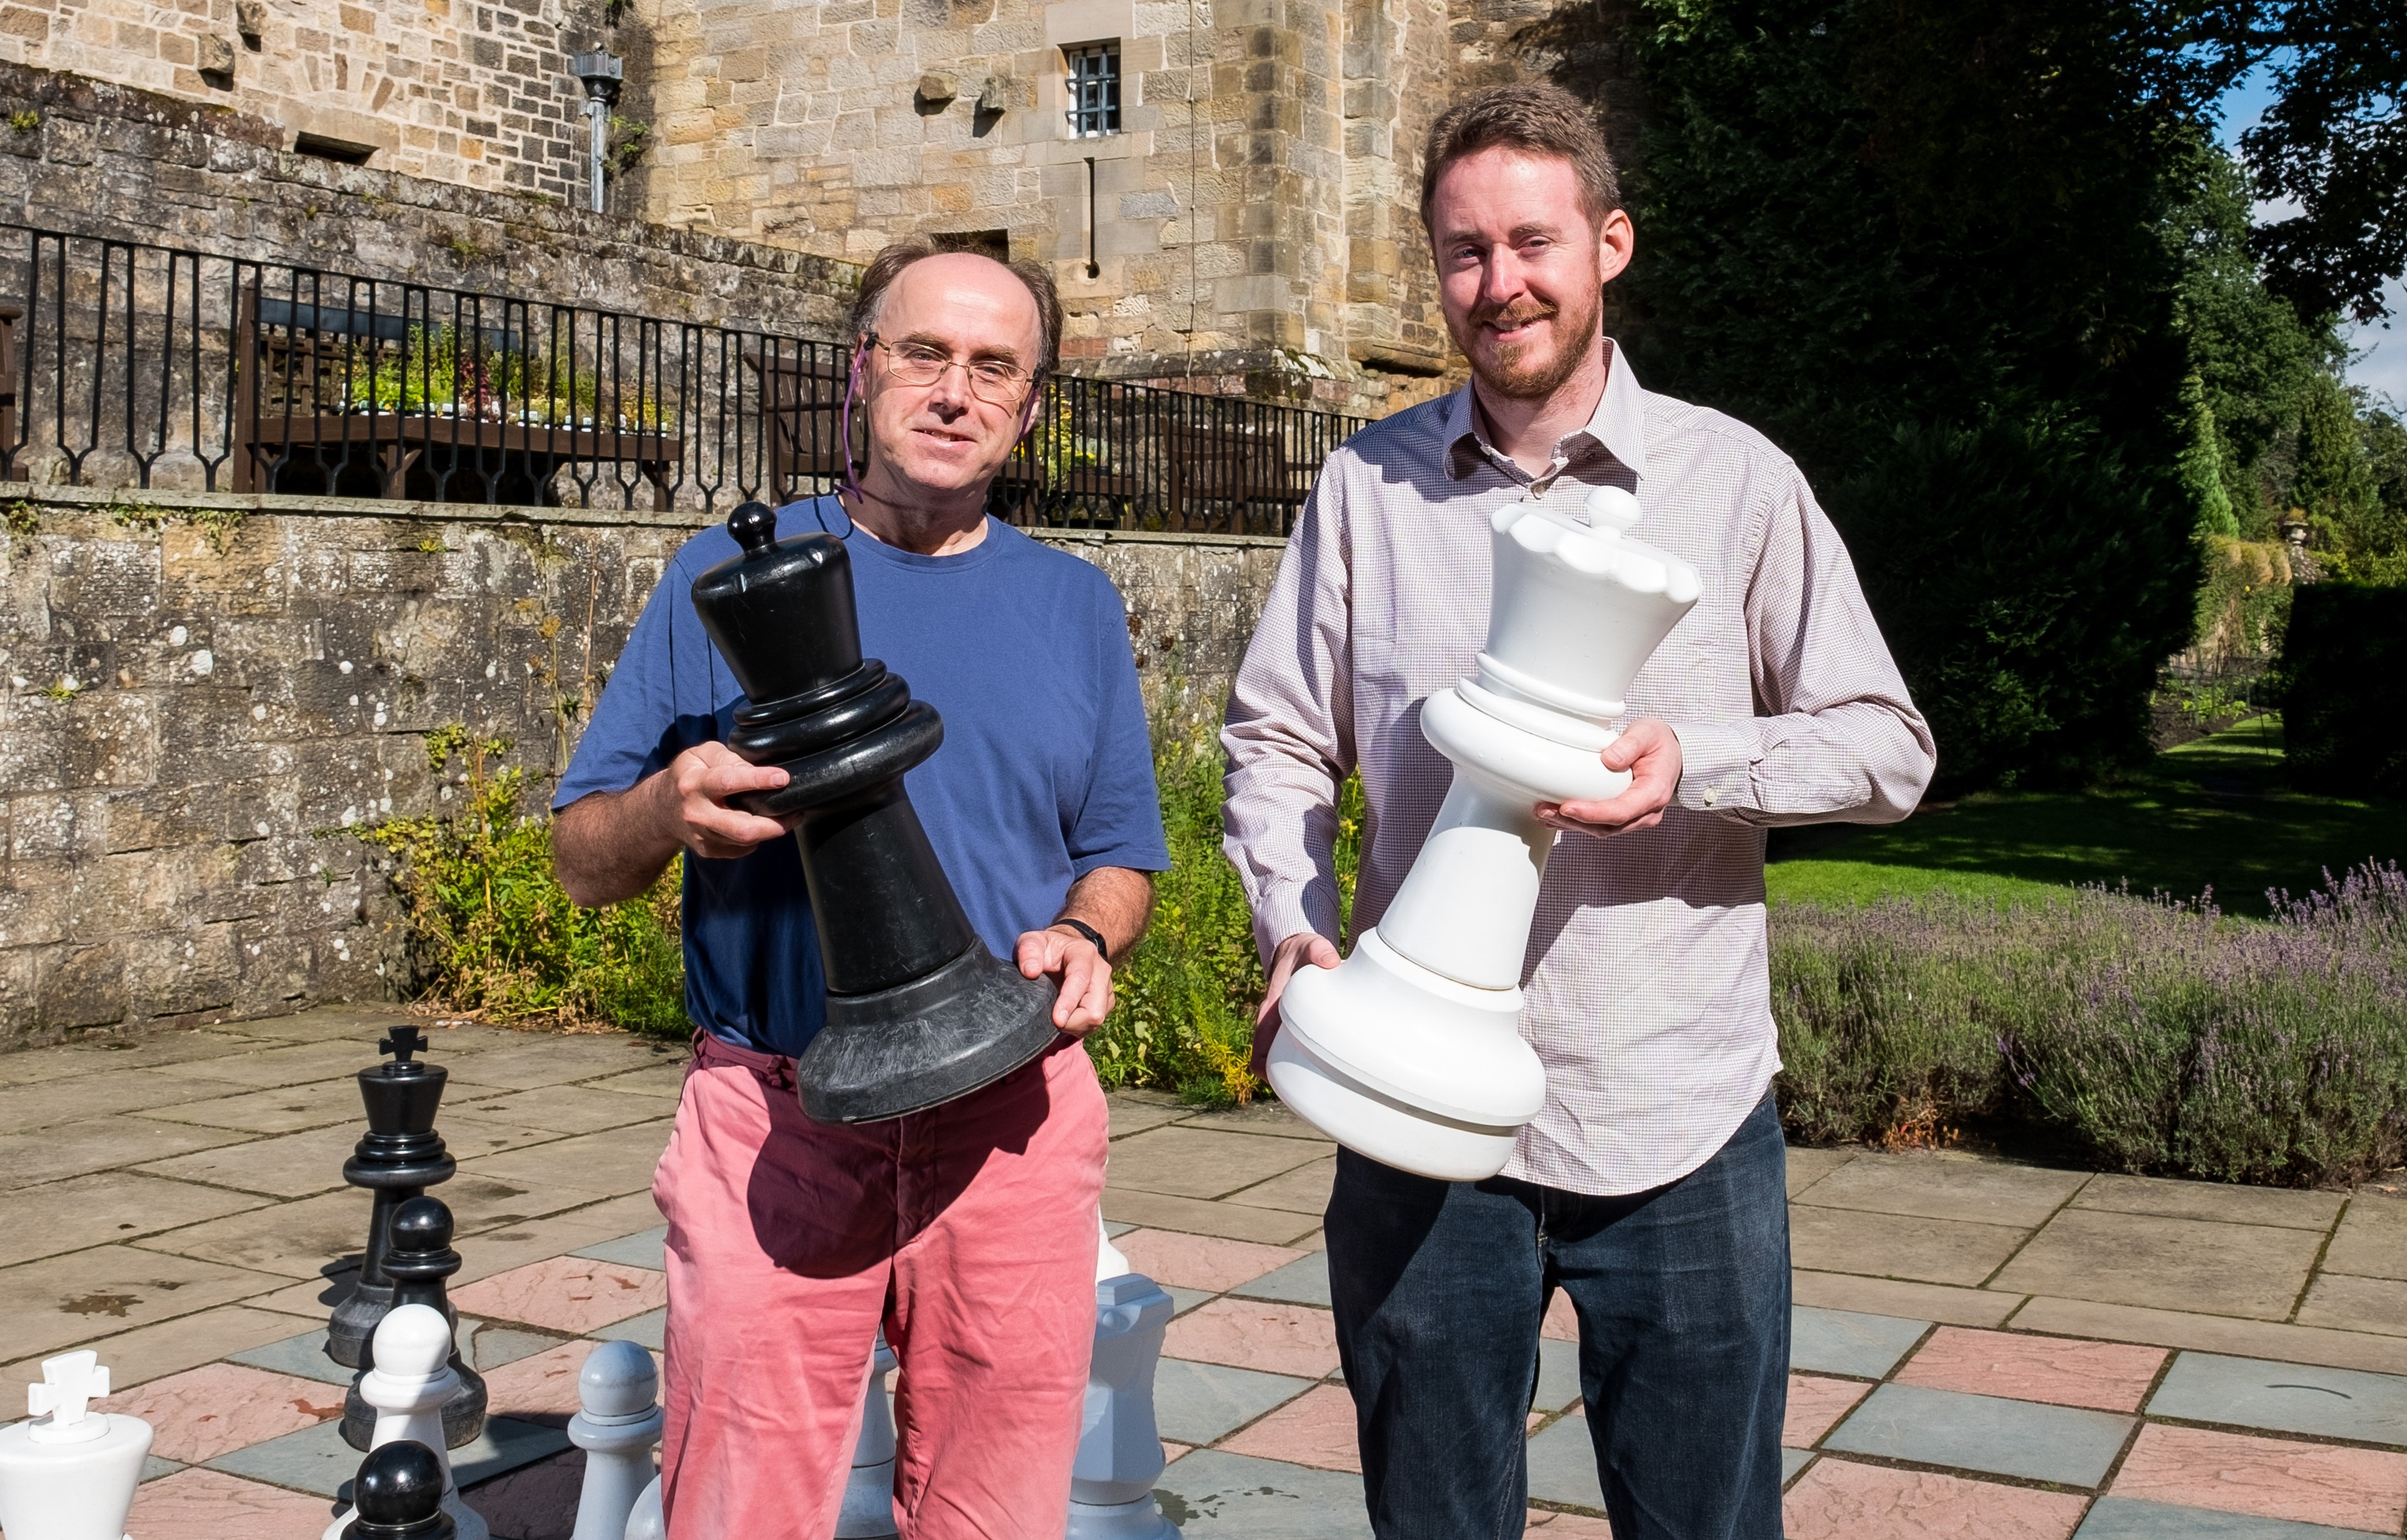 Professor Ian Gent and Dr Peter Nightingale attempt the puzzle with the giant chess set at Falkland Palace.